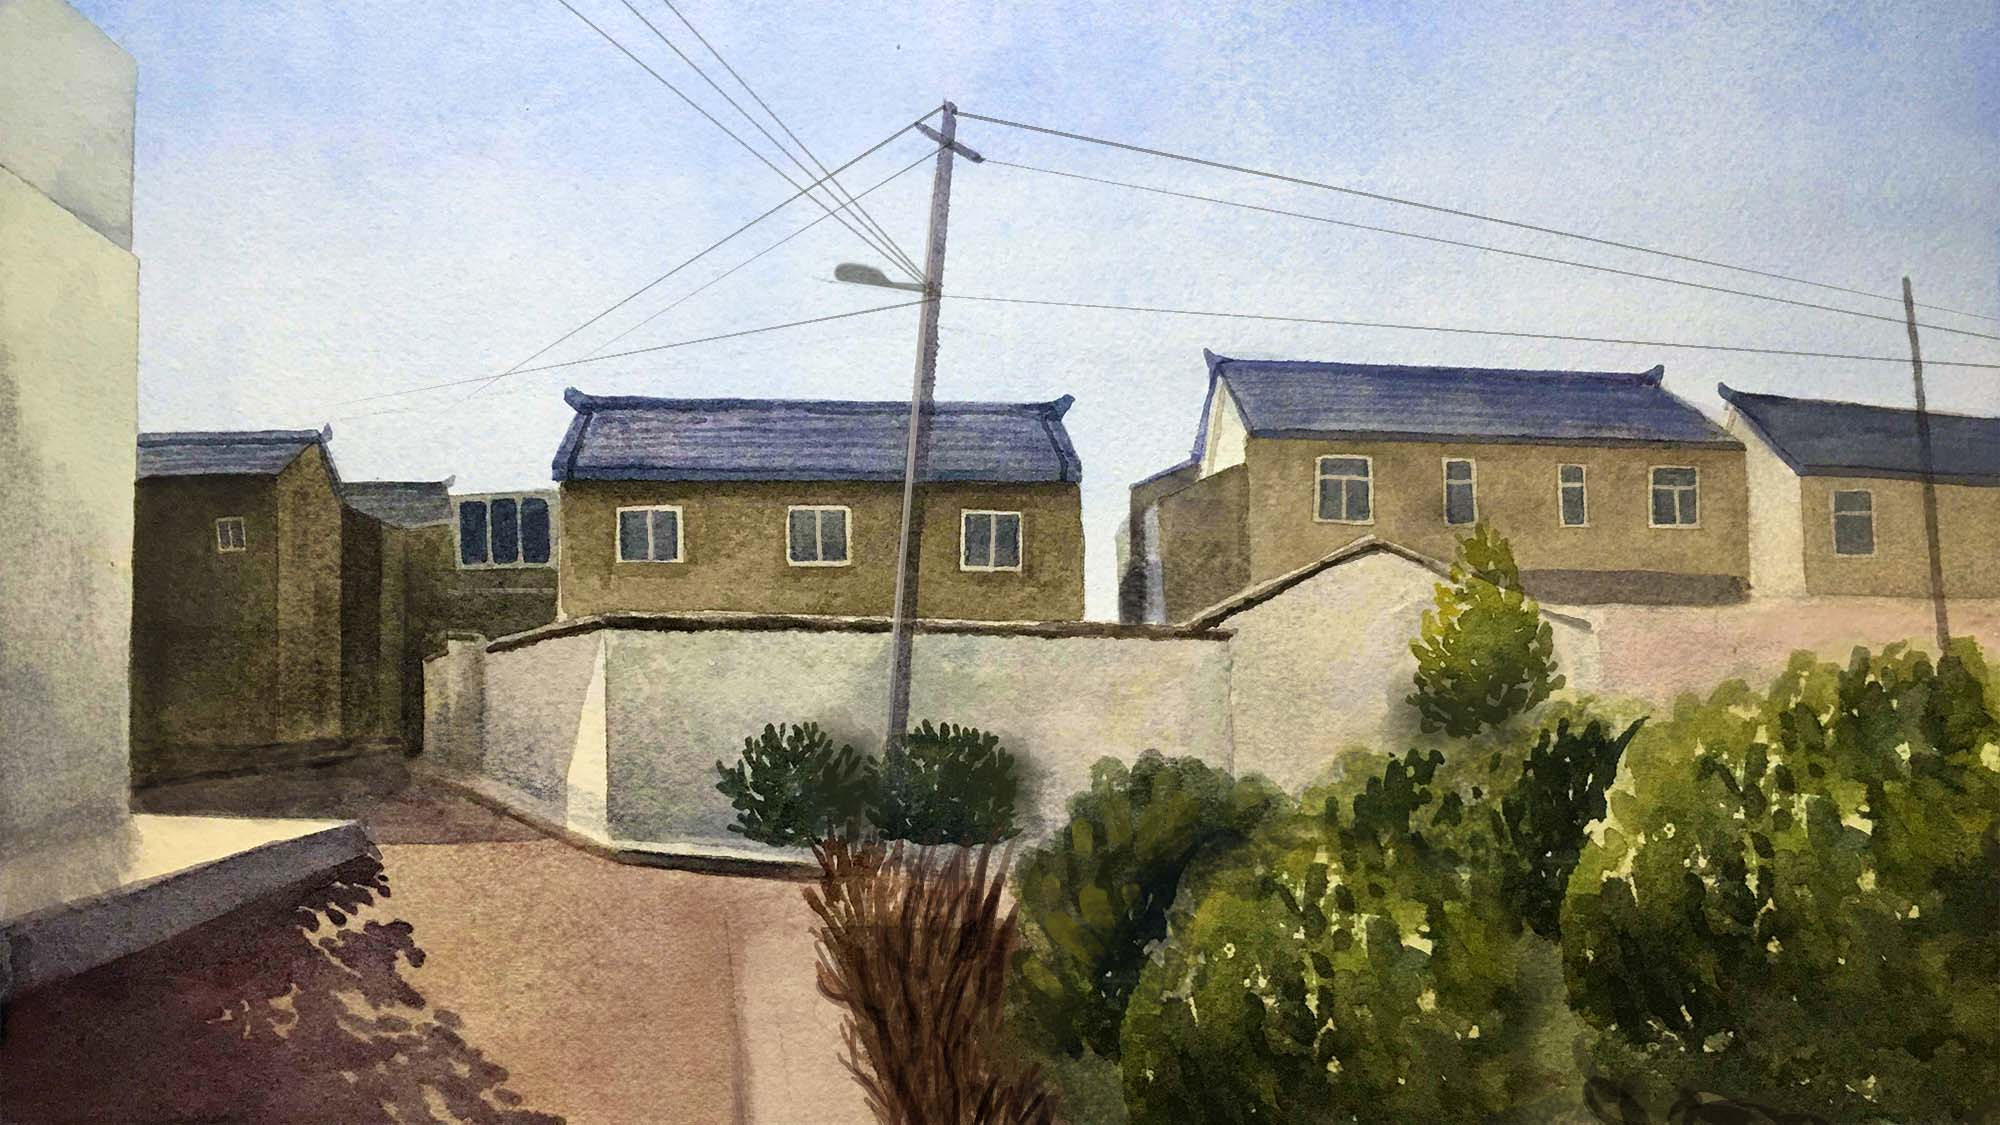 Painting of a street corner with homes walled off and power lines